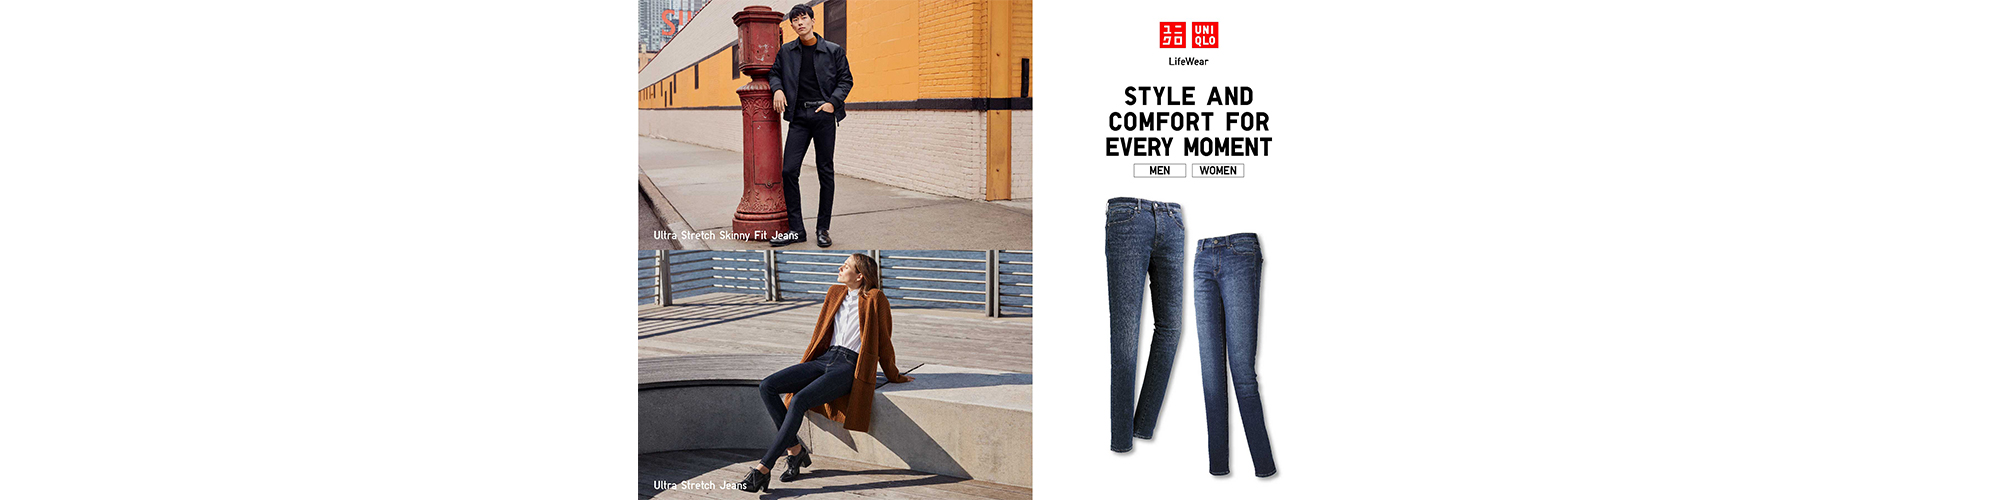 km_website_slider_uniqlo_271118